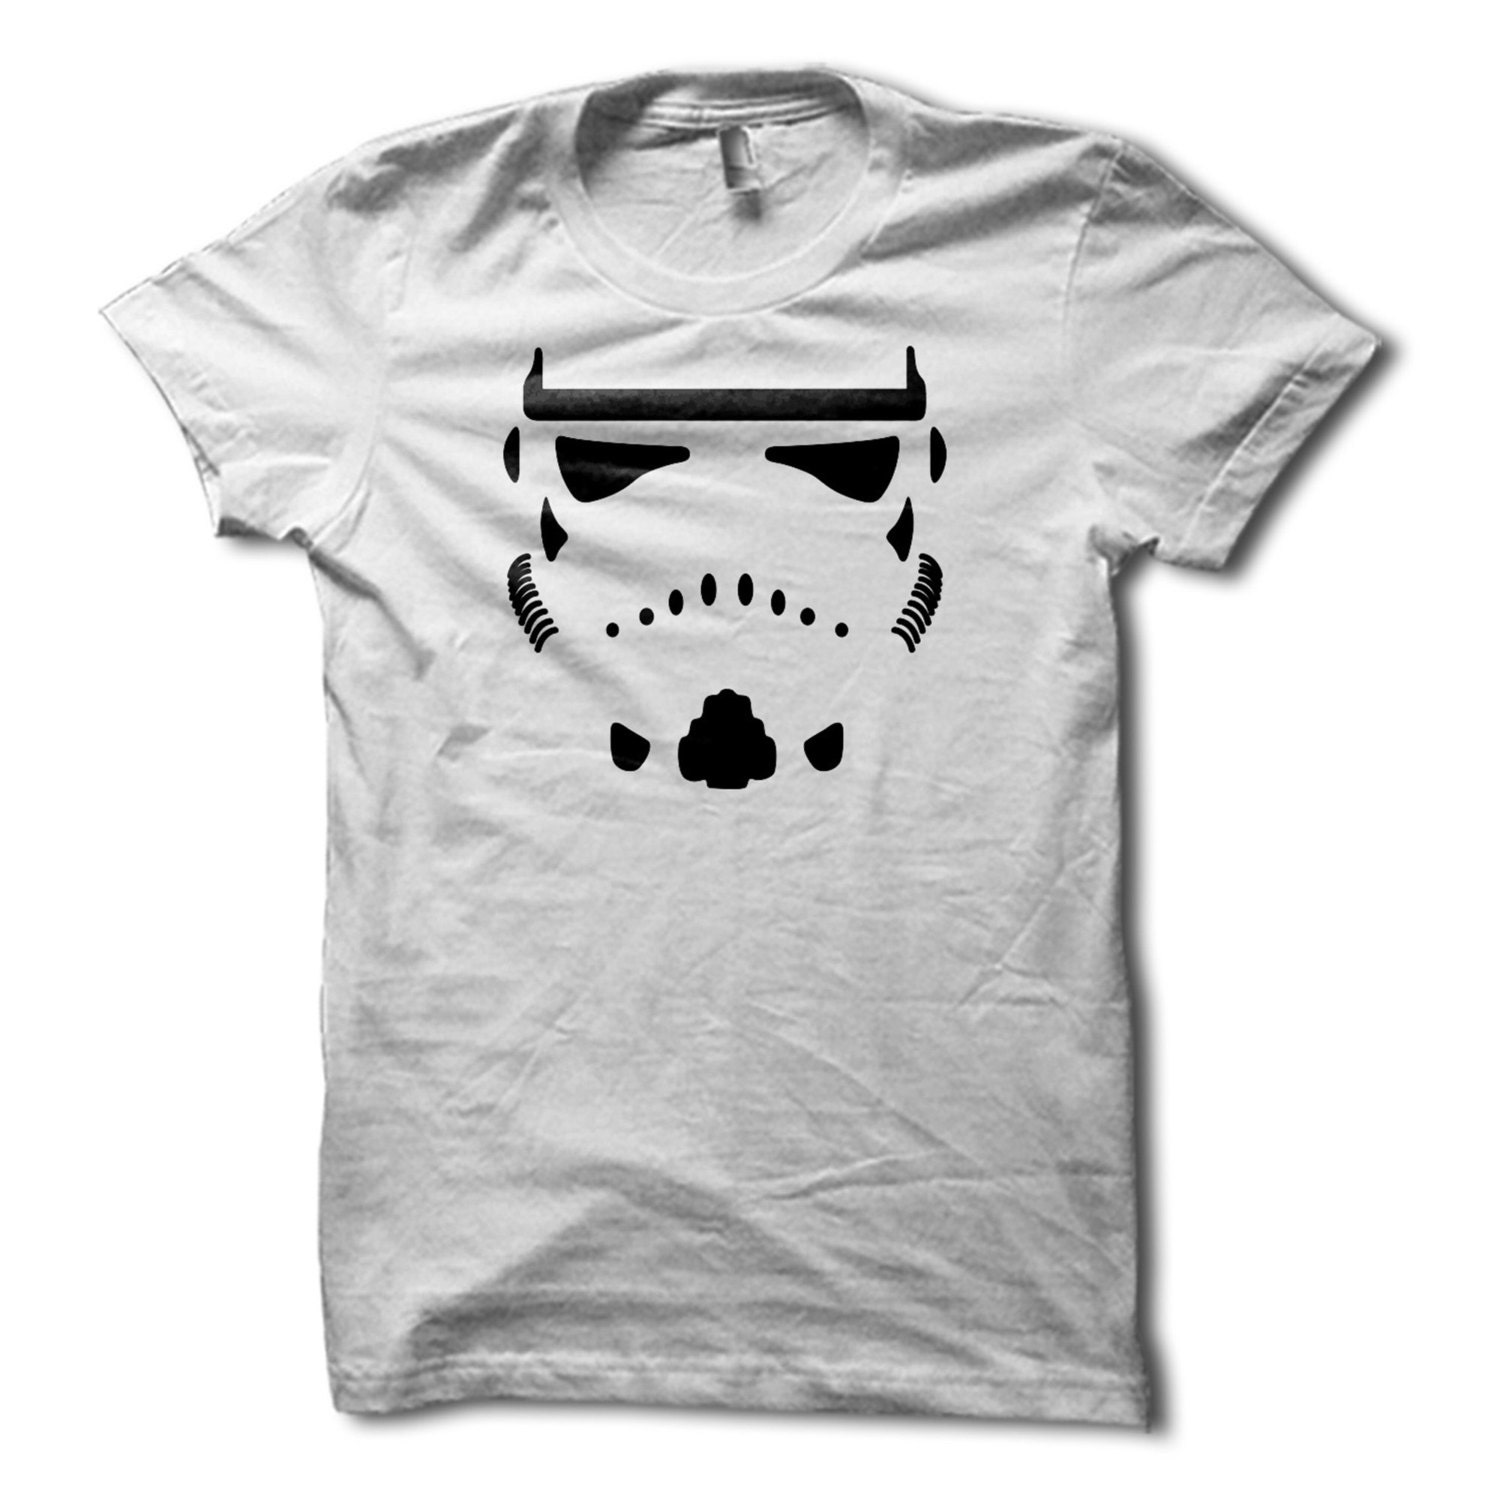 Star Wars Storm Trooper Shirt Awesome Stormtrooper Tee